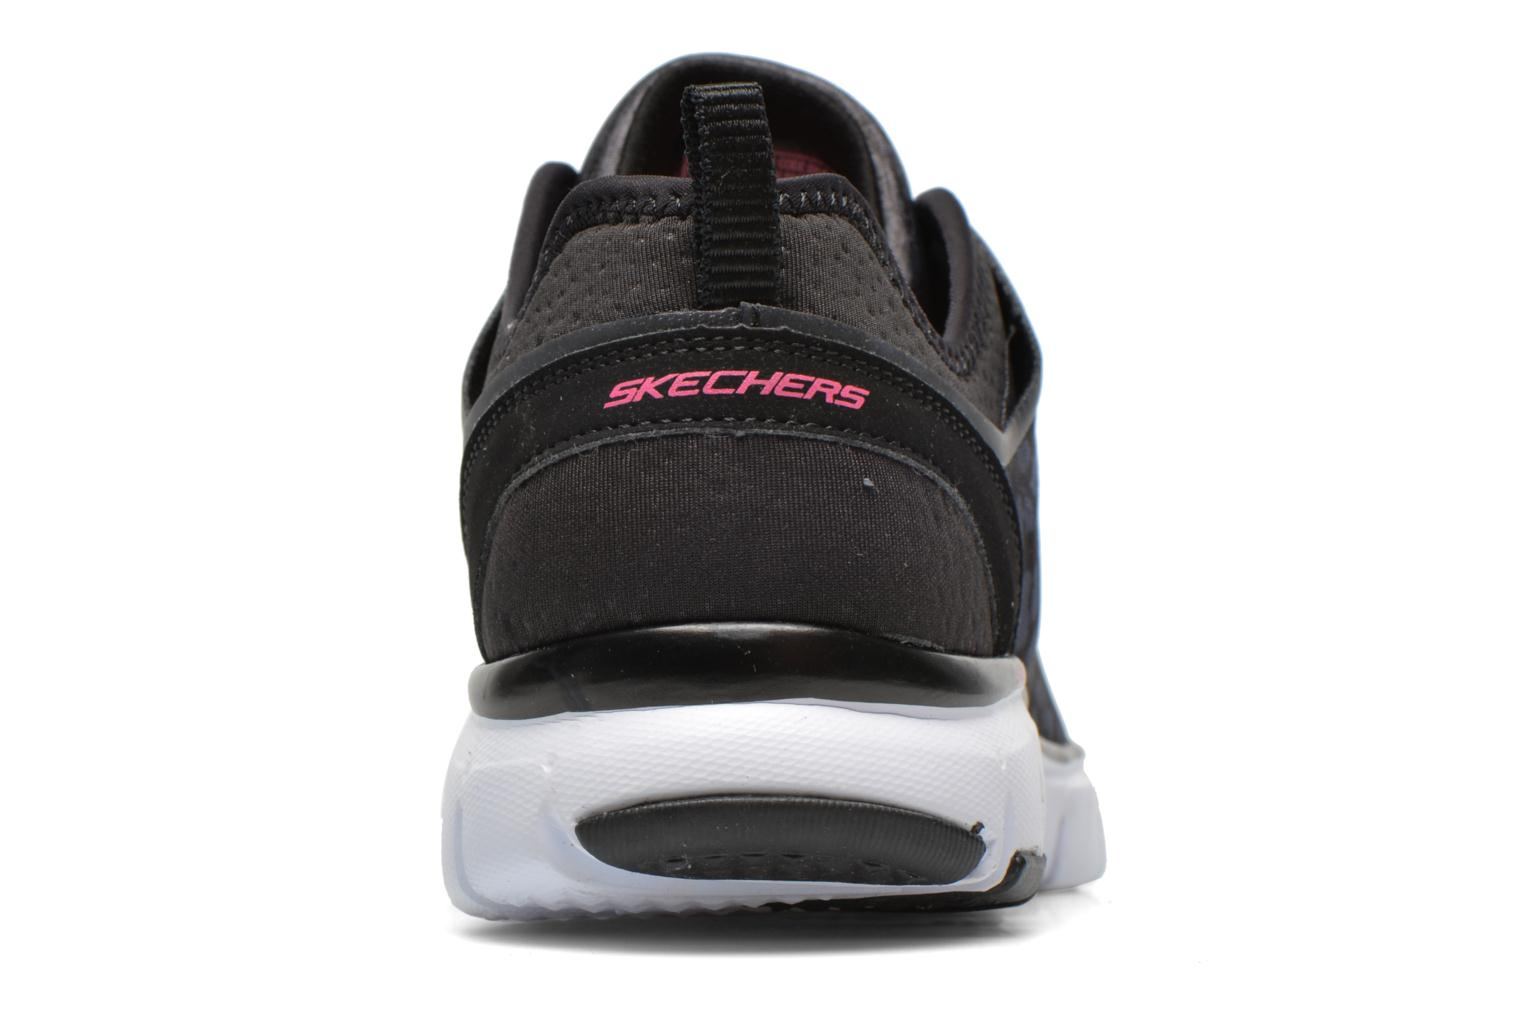 Zapatillas de deporte Skechers Skech-Flex Power Player 12131 Negro vista lateral derecha